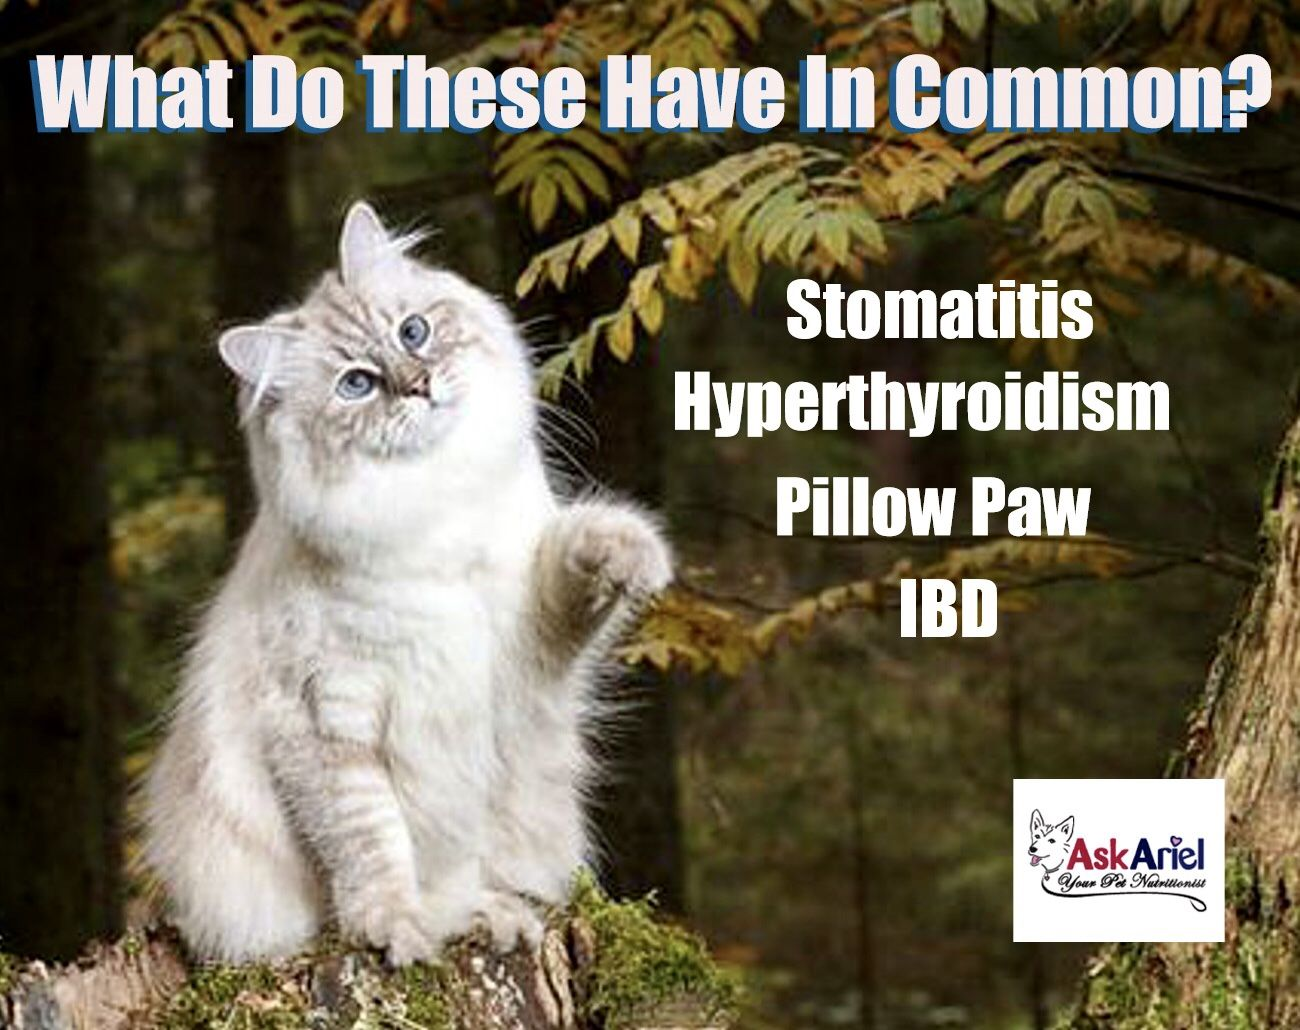 Autoimmune conditions such as Stomatitis, Pillow Paw